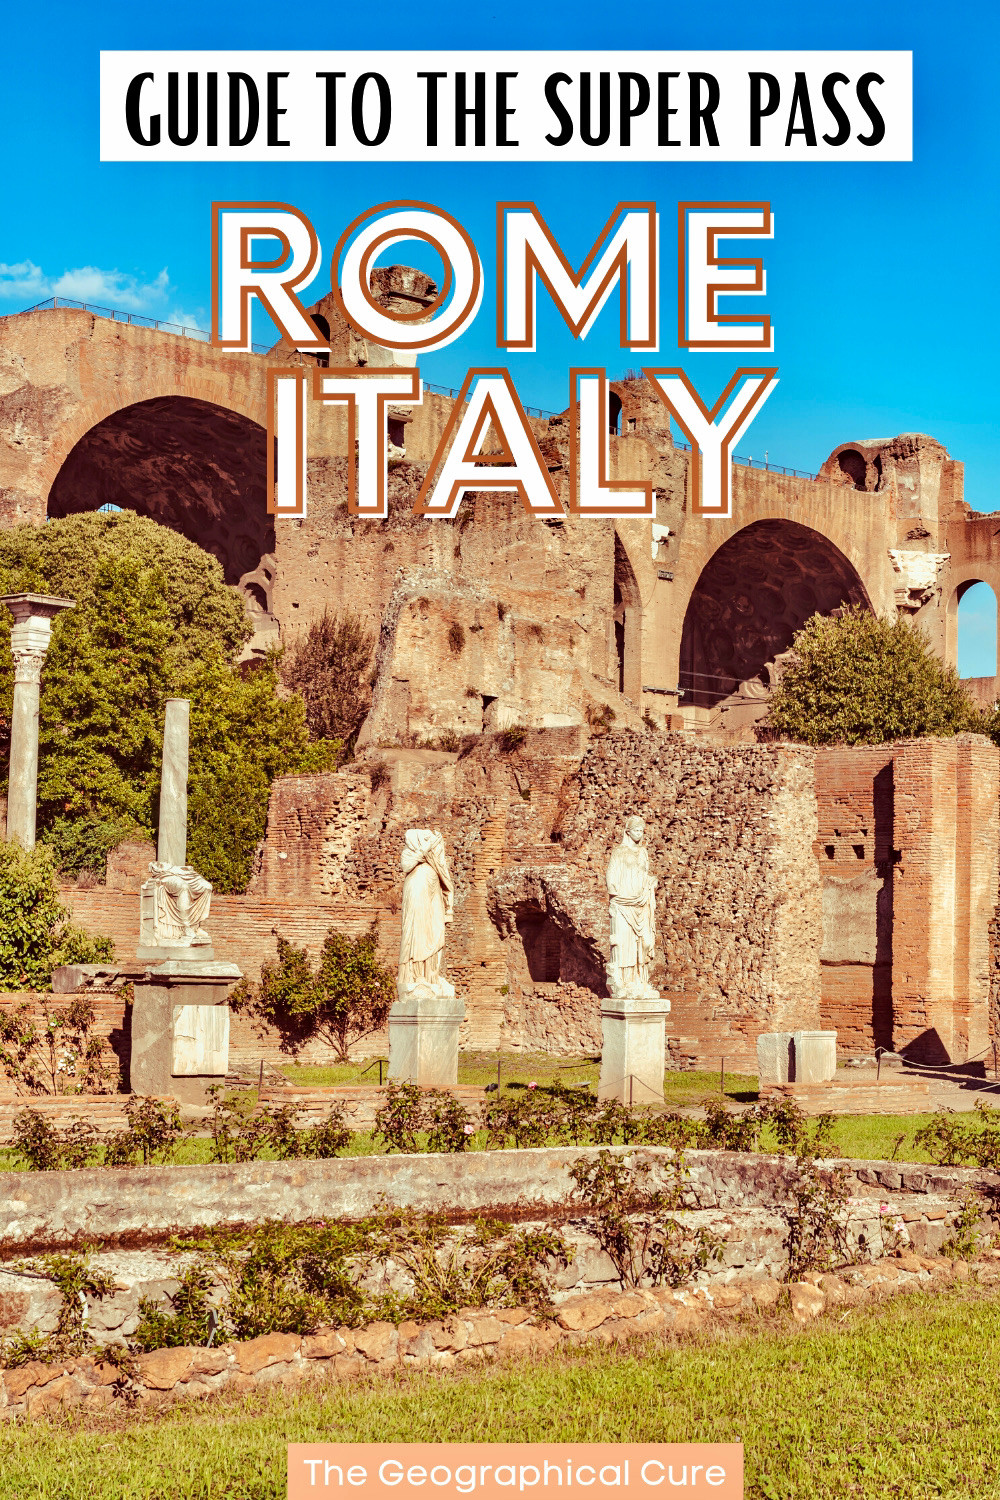 ultimate guide to Rome's special SUPER pass for restricted archaeological sites and hidden gems in Rome